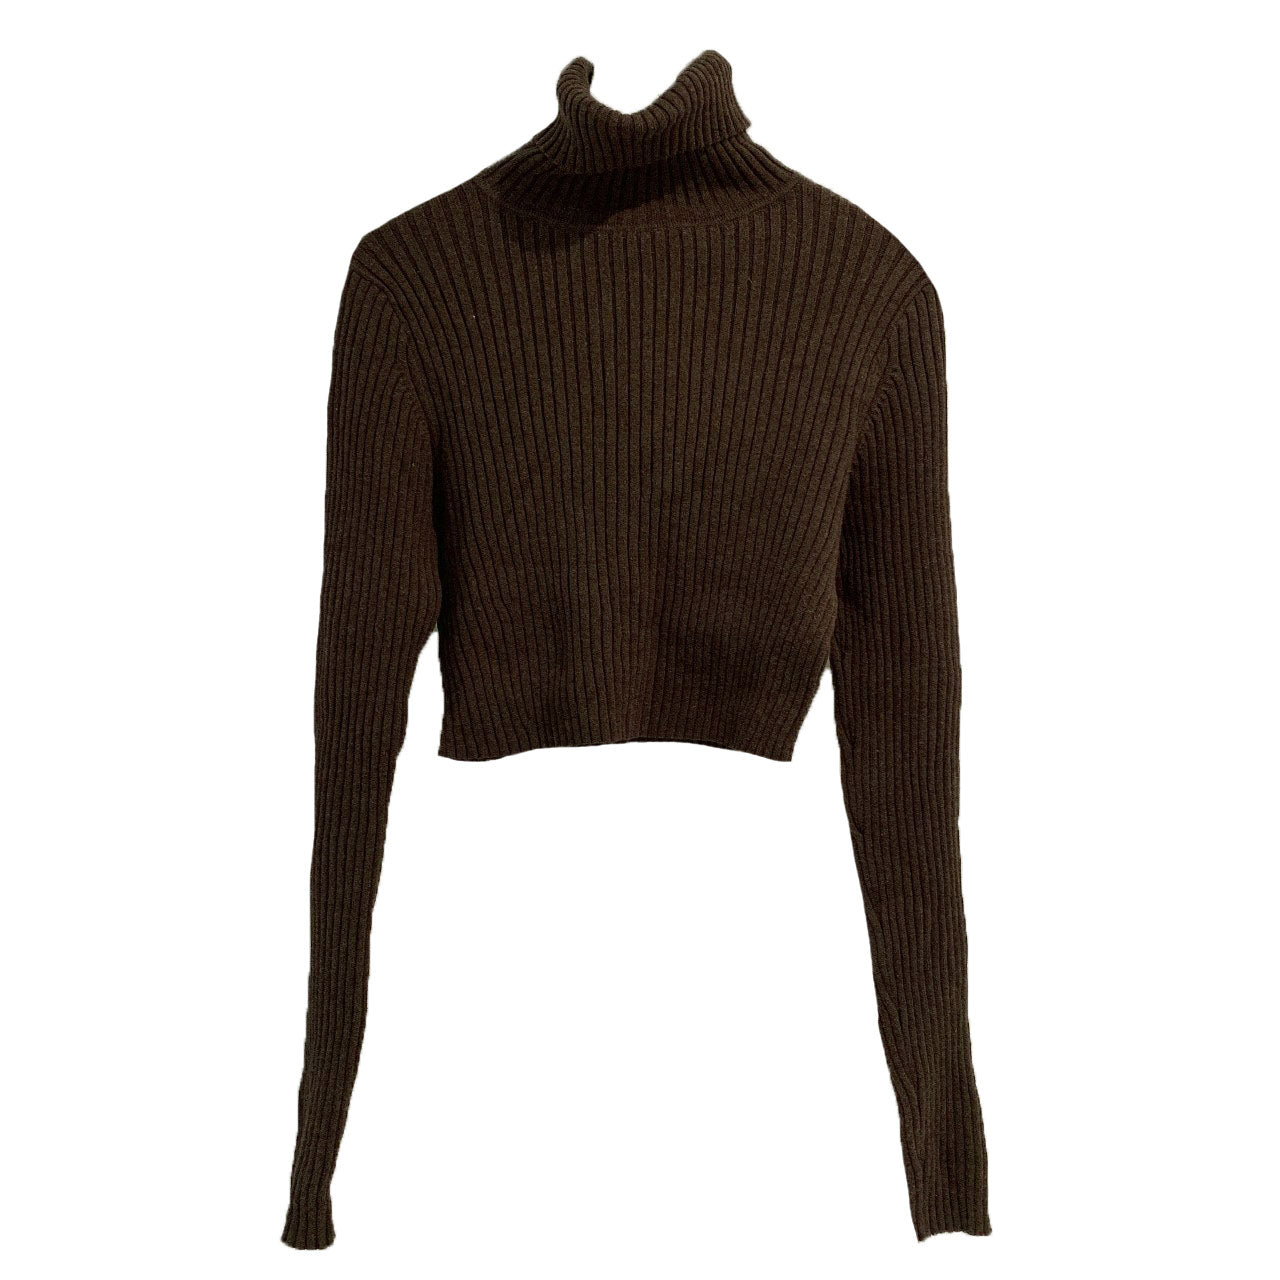 Choco ribbed turtleneck